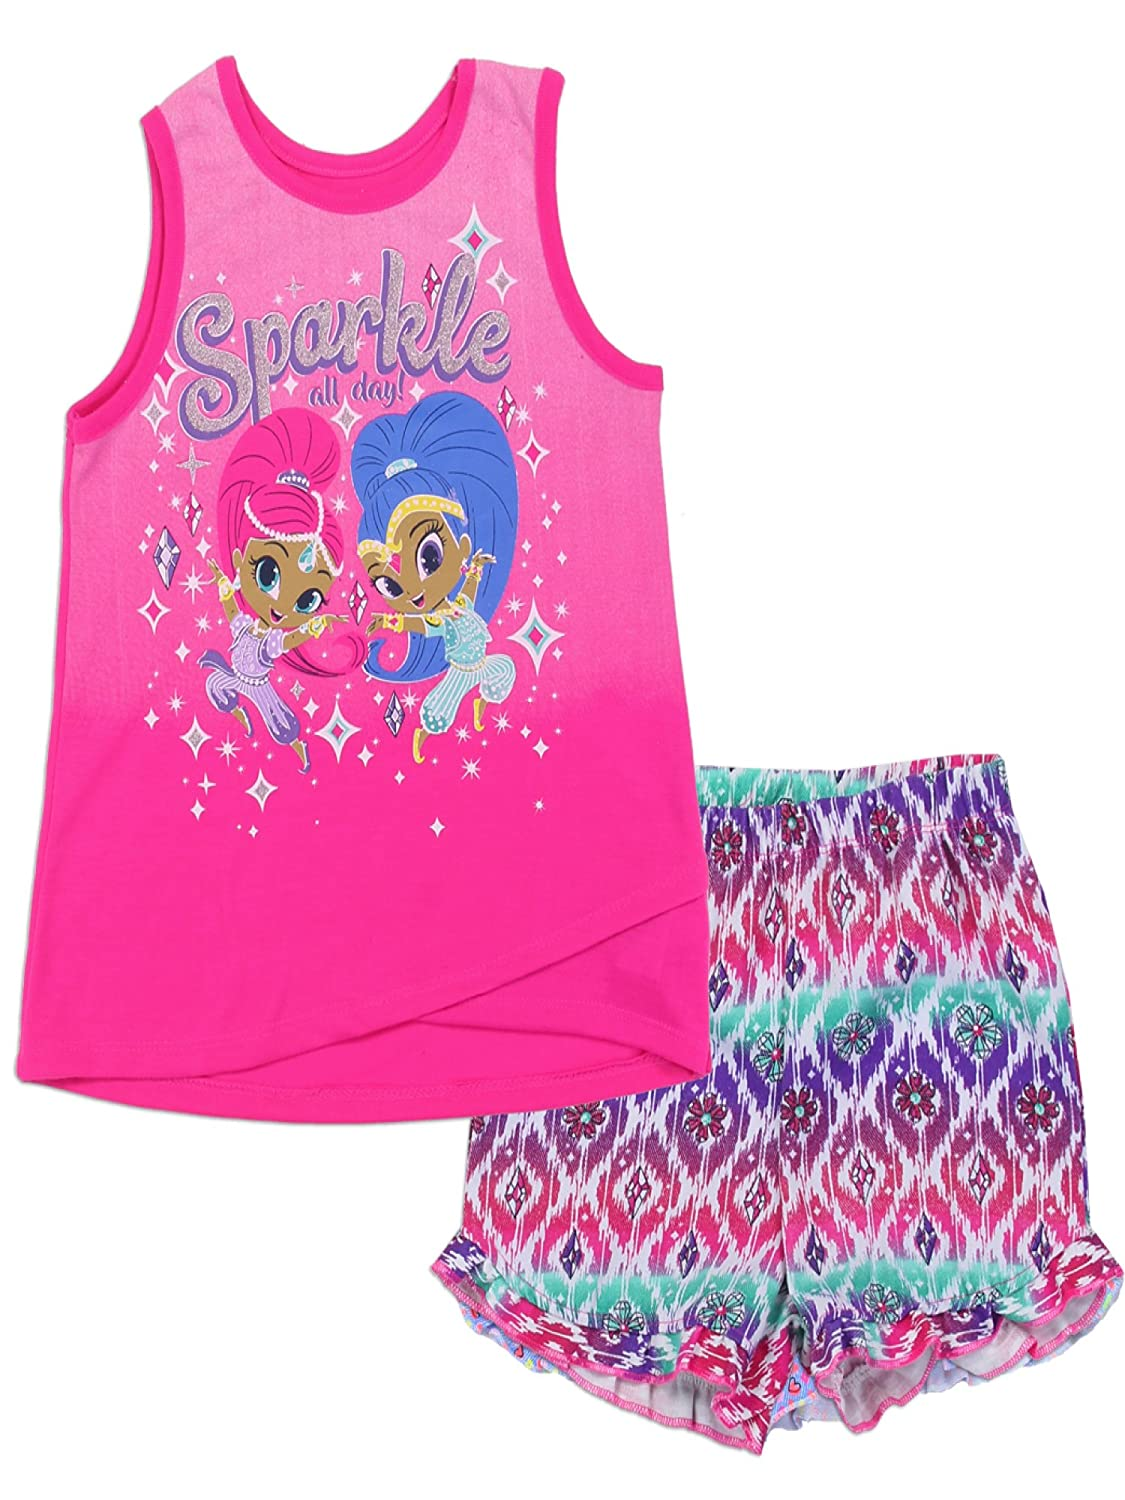 Shine Shimmer and Shine Big Girls' 2PC Short Set, Bright Pink and fix the brand name to Nickelodeon